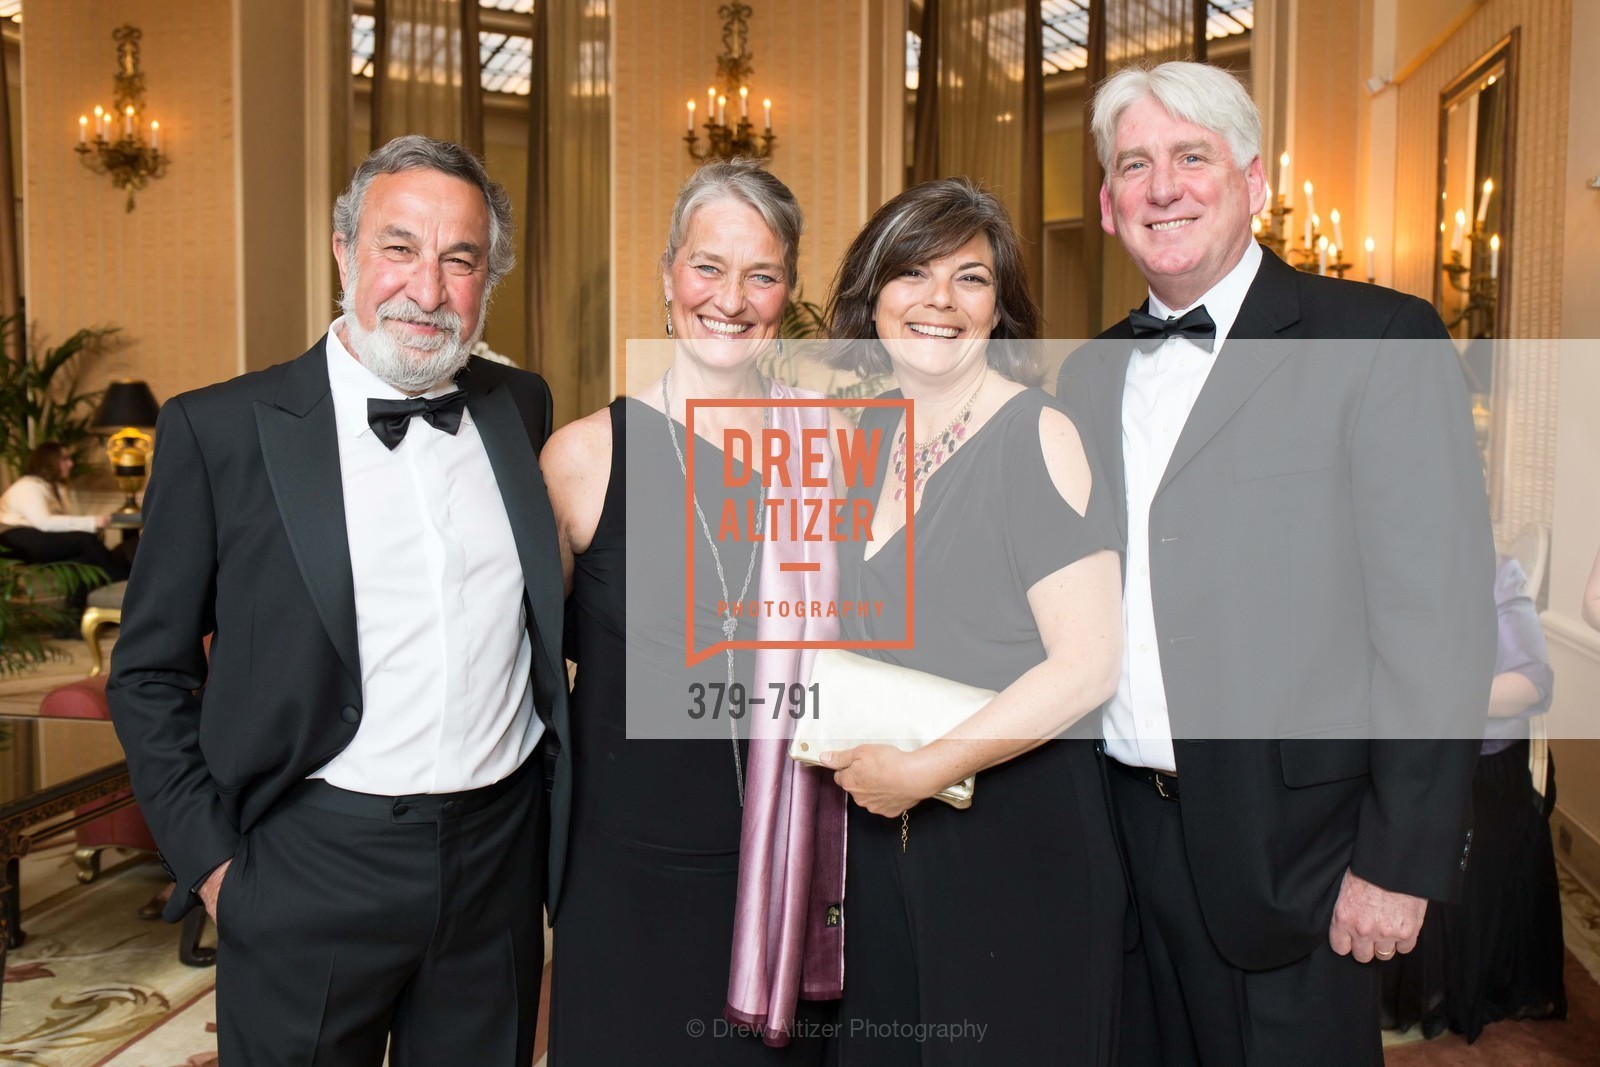 Bob Krikorian, Leslie Krikorian, Susie Buckley, Robert Buckley, SAN FRANCISCO HERITAGE Soiree 2015, US, April 19th, 2015,Drew Altizer, Drew Altizer Photography, full-service agency, private events, San Francisco photographer, photographer california